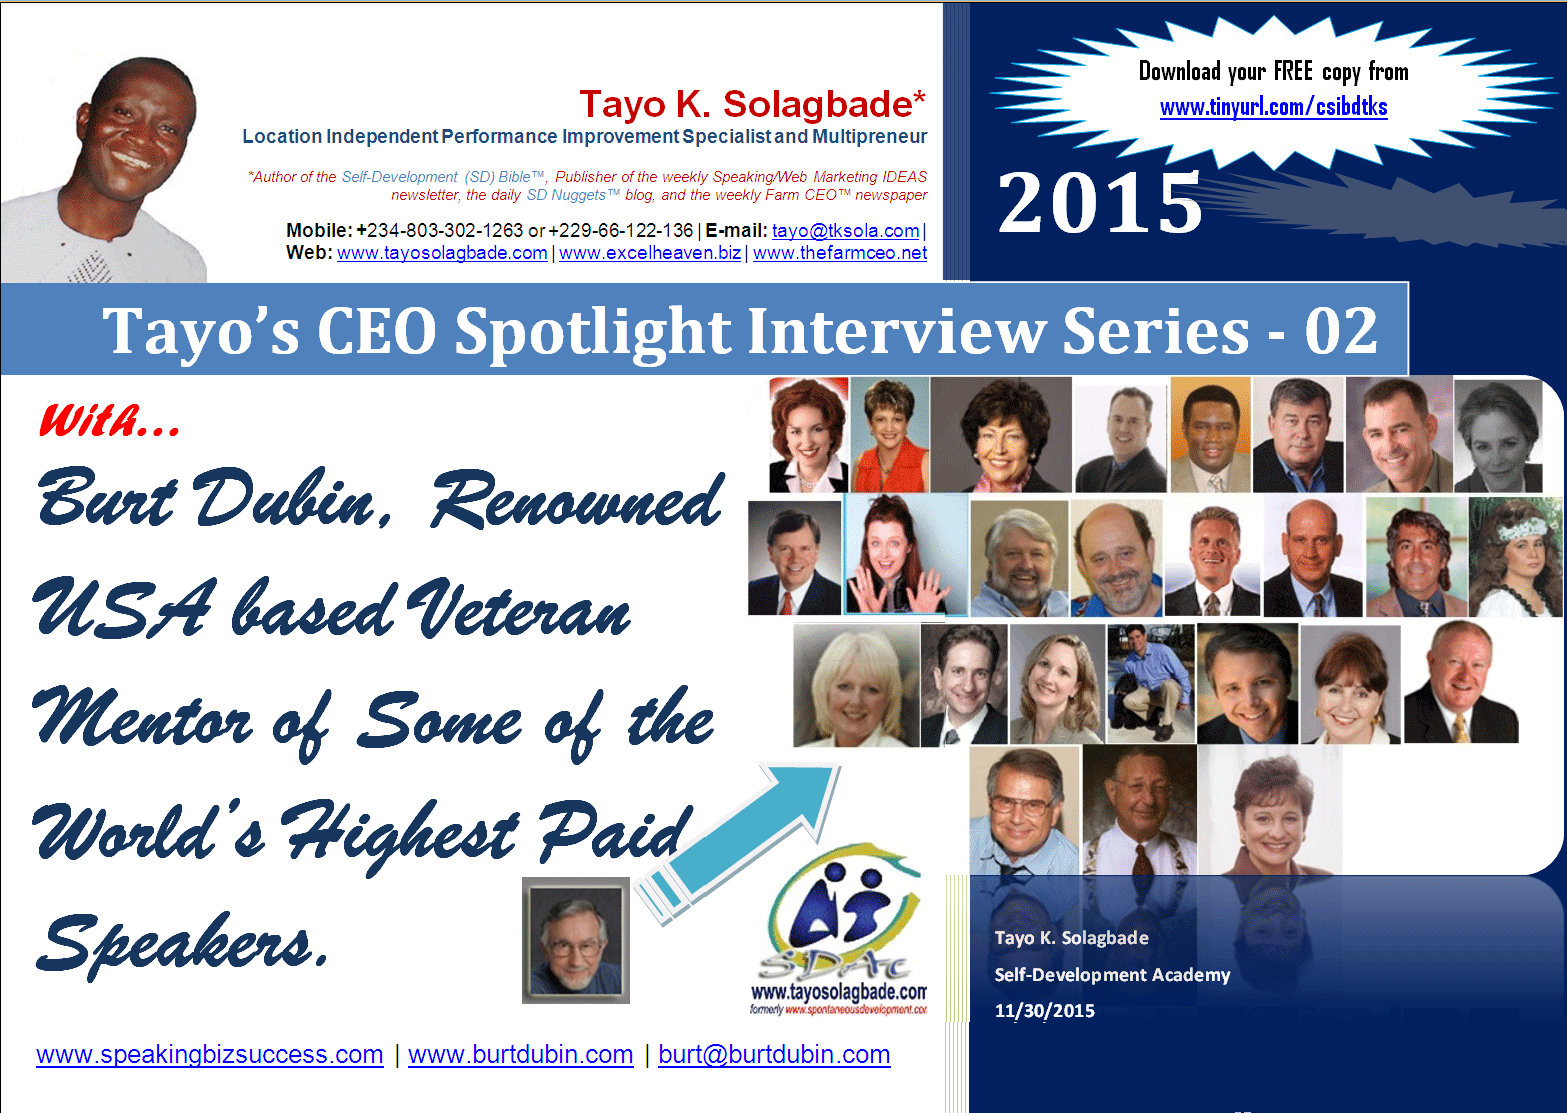 PDF Cover page - CEO Spotlight Interview With Burt Dubin, 91 Year Old Creator of the Speaking Success System™, and Mentor to Some of the World's Highest Paid Speakers